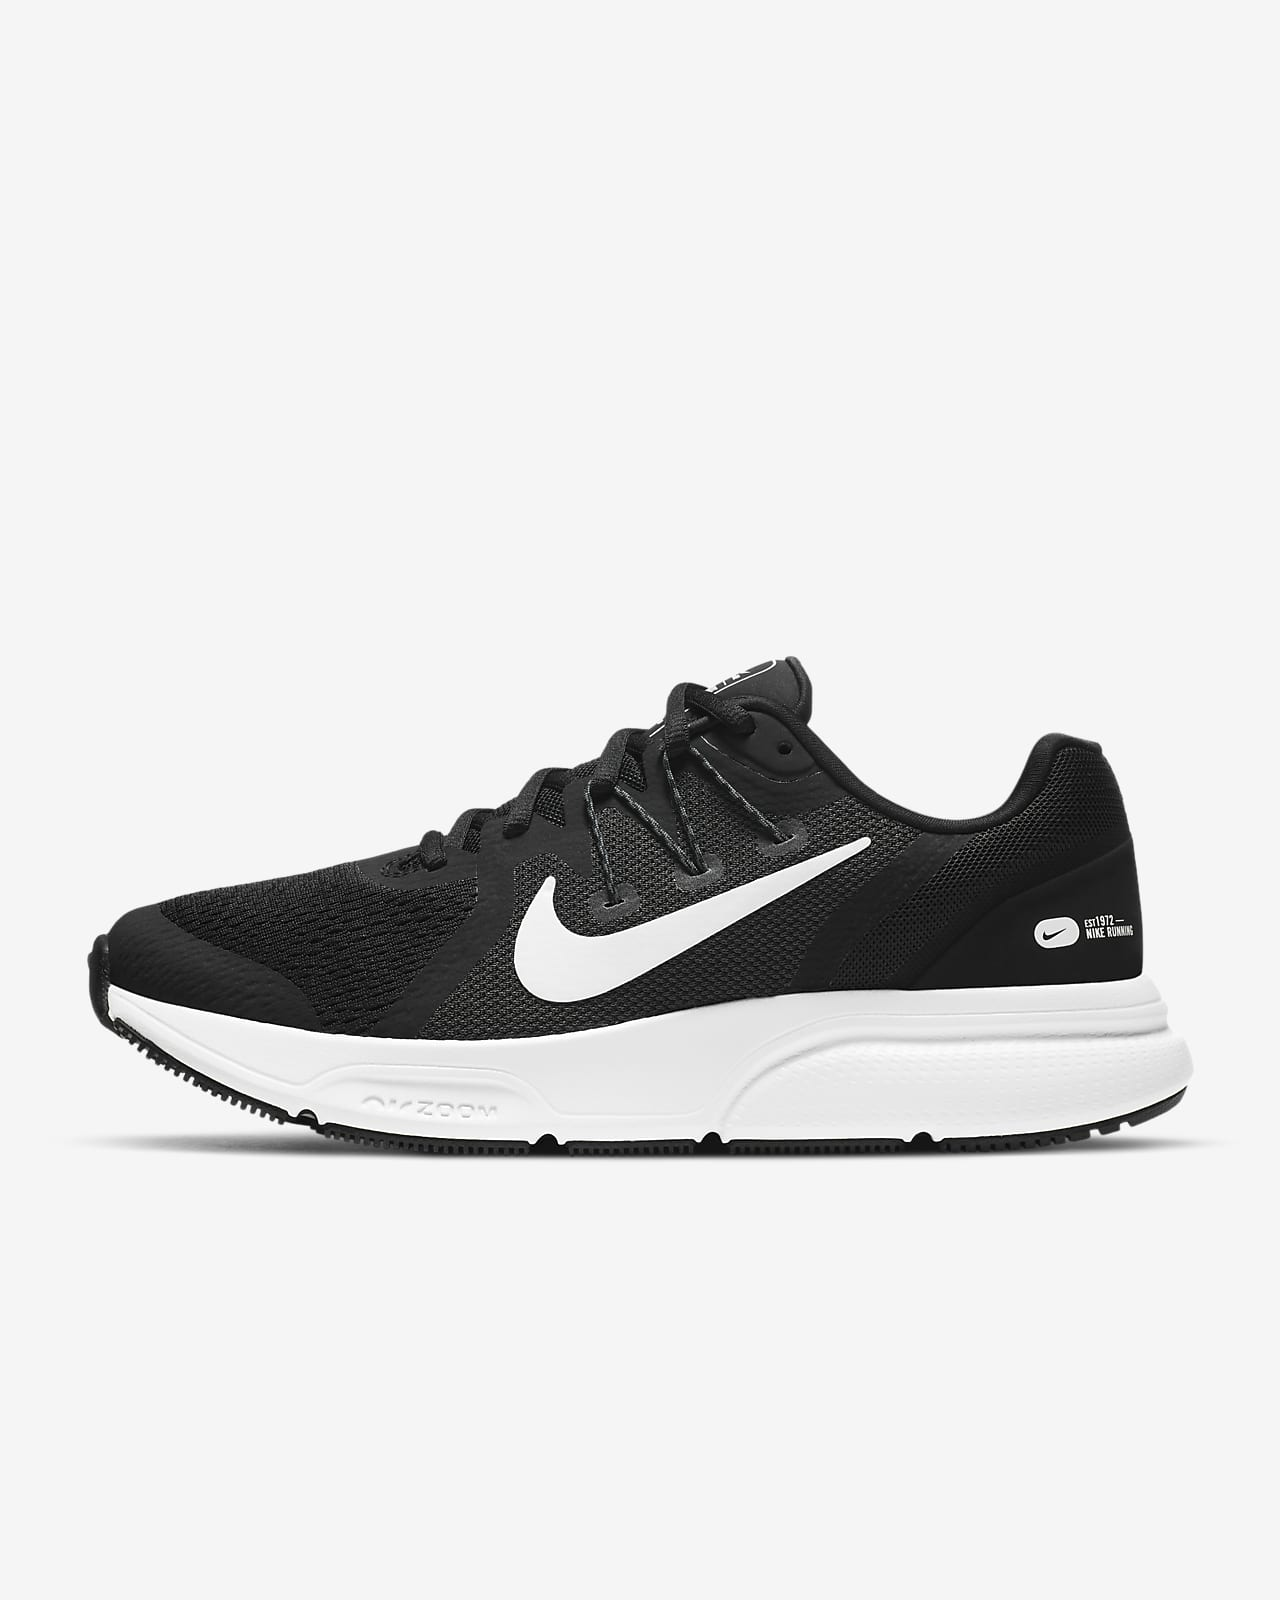 Chaussure de running Nike Zoom Span 3 pour Femme